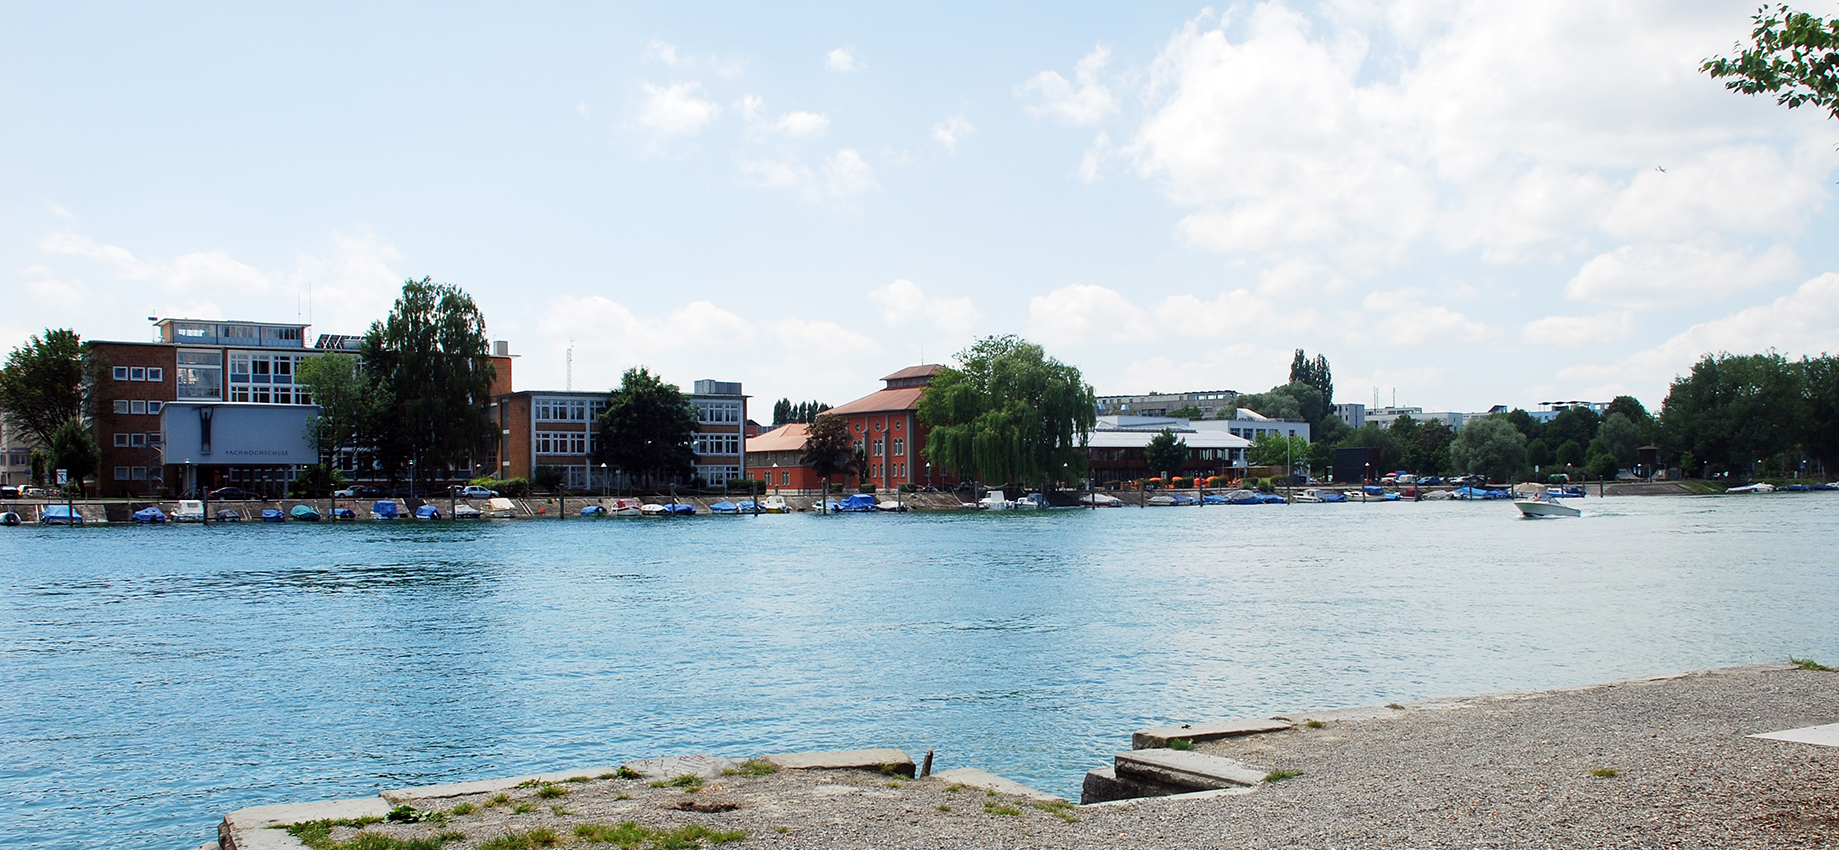 Campus and river Rhine